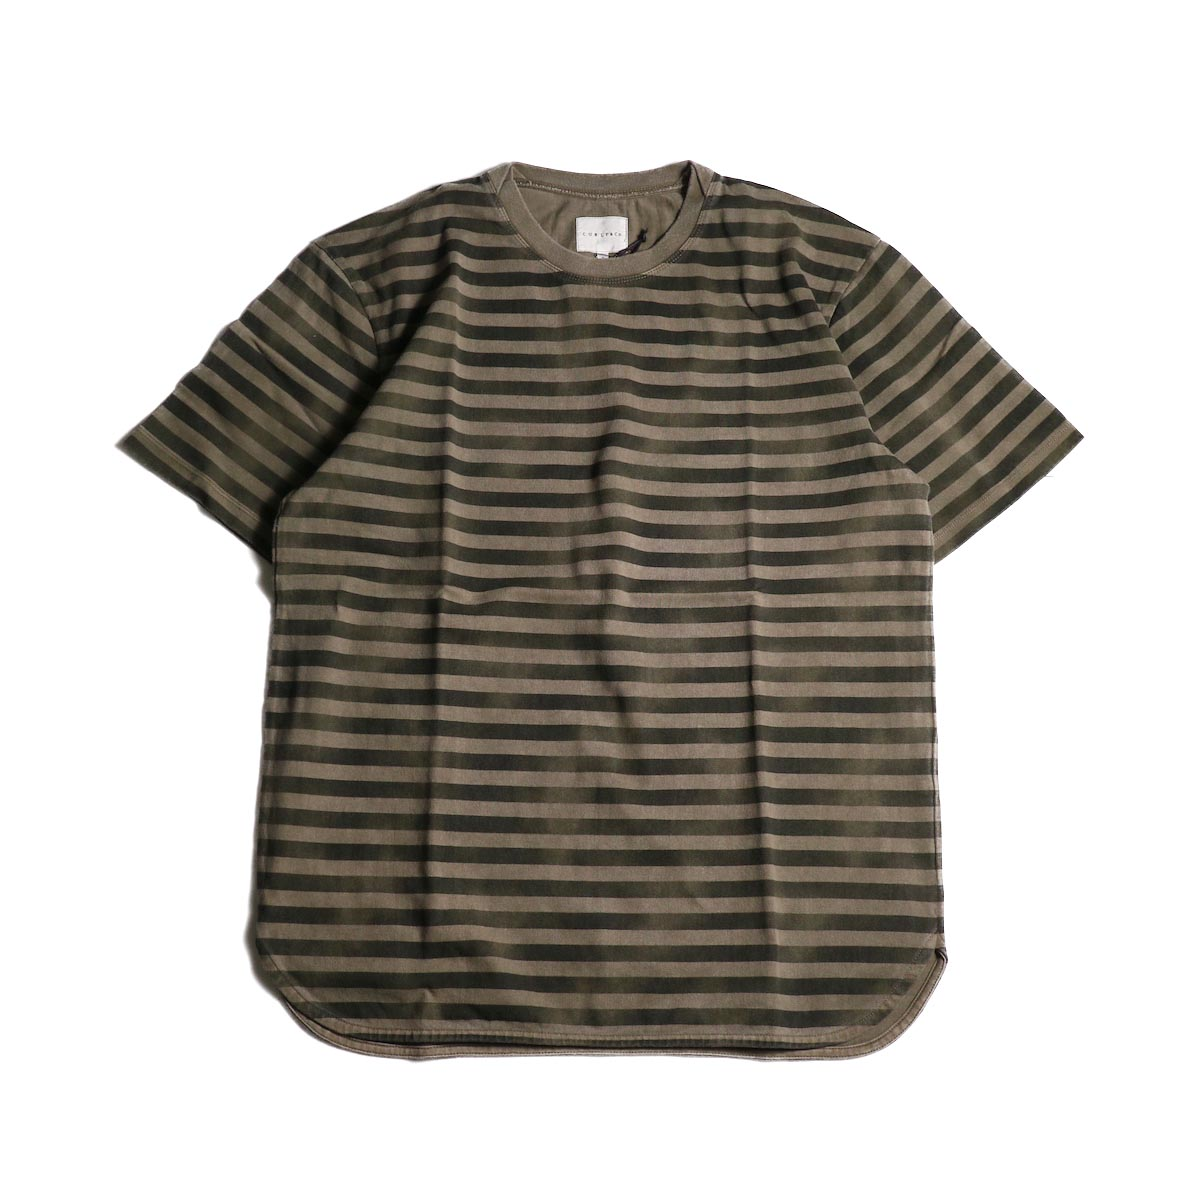 CURLY / FROSTED SS BORDER TEE (Beige/Black)正面